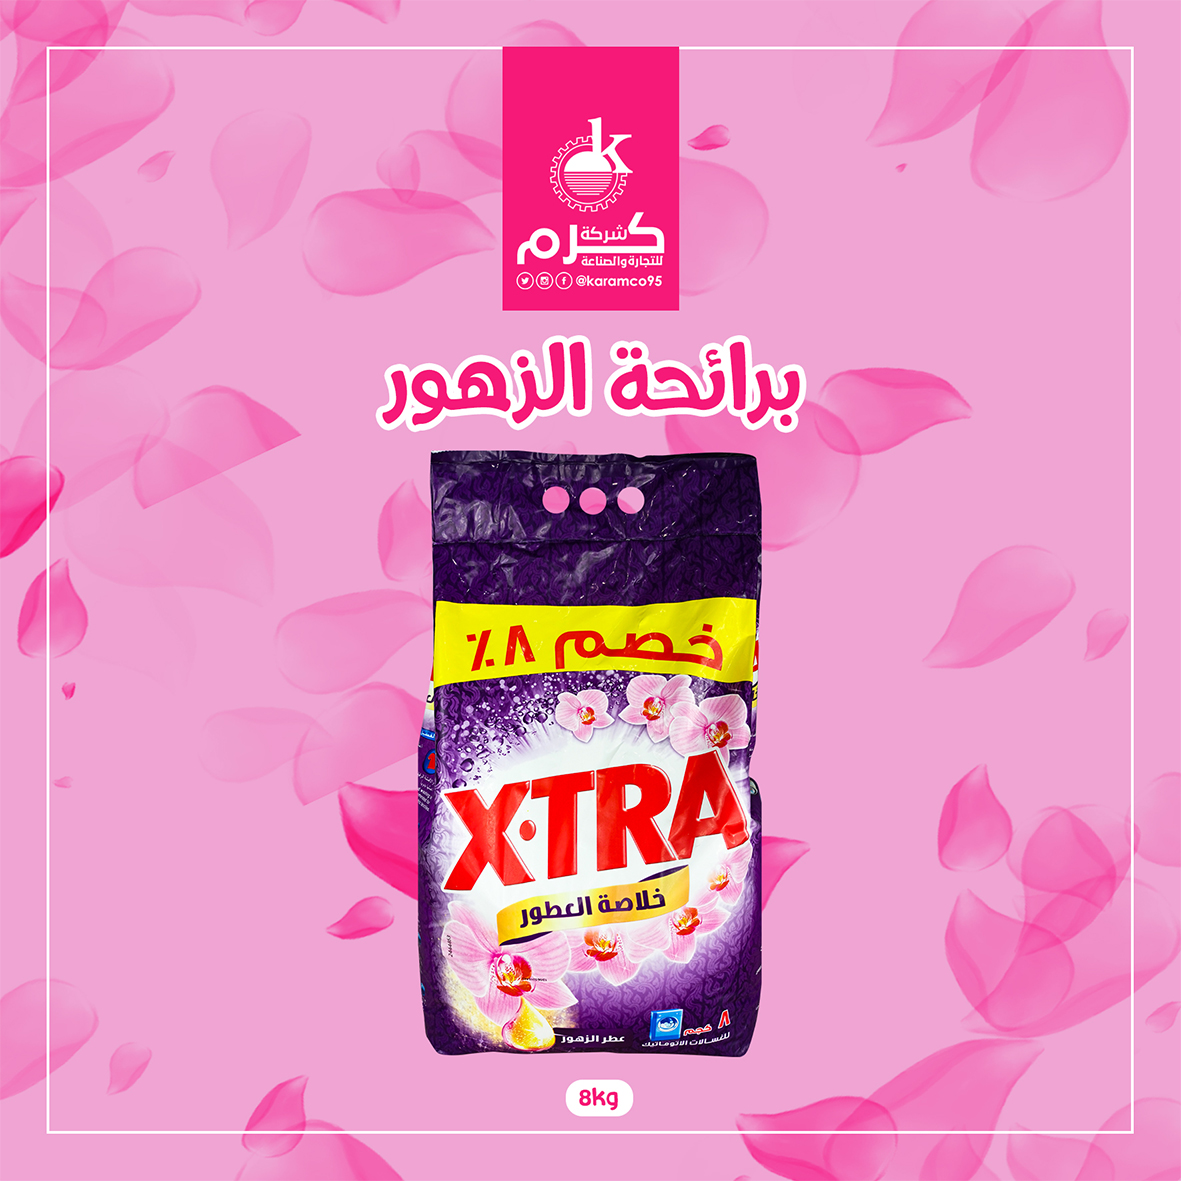 X.tra Washing Powder (flowers Smell) 8 Kg